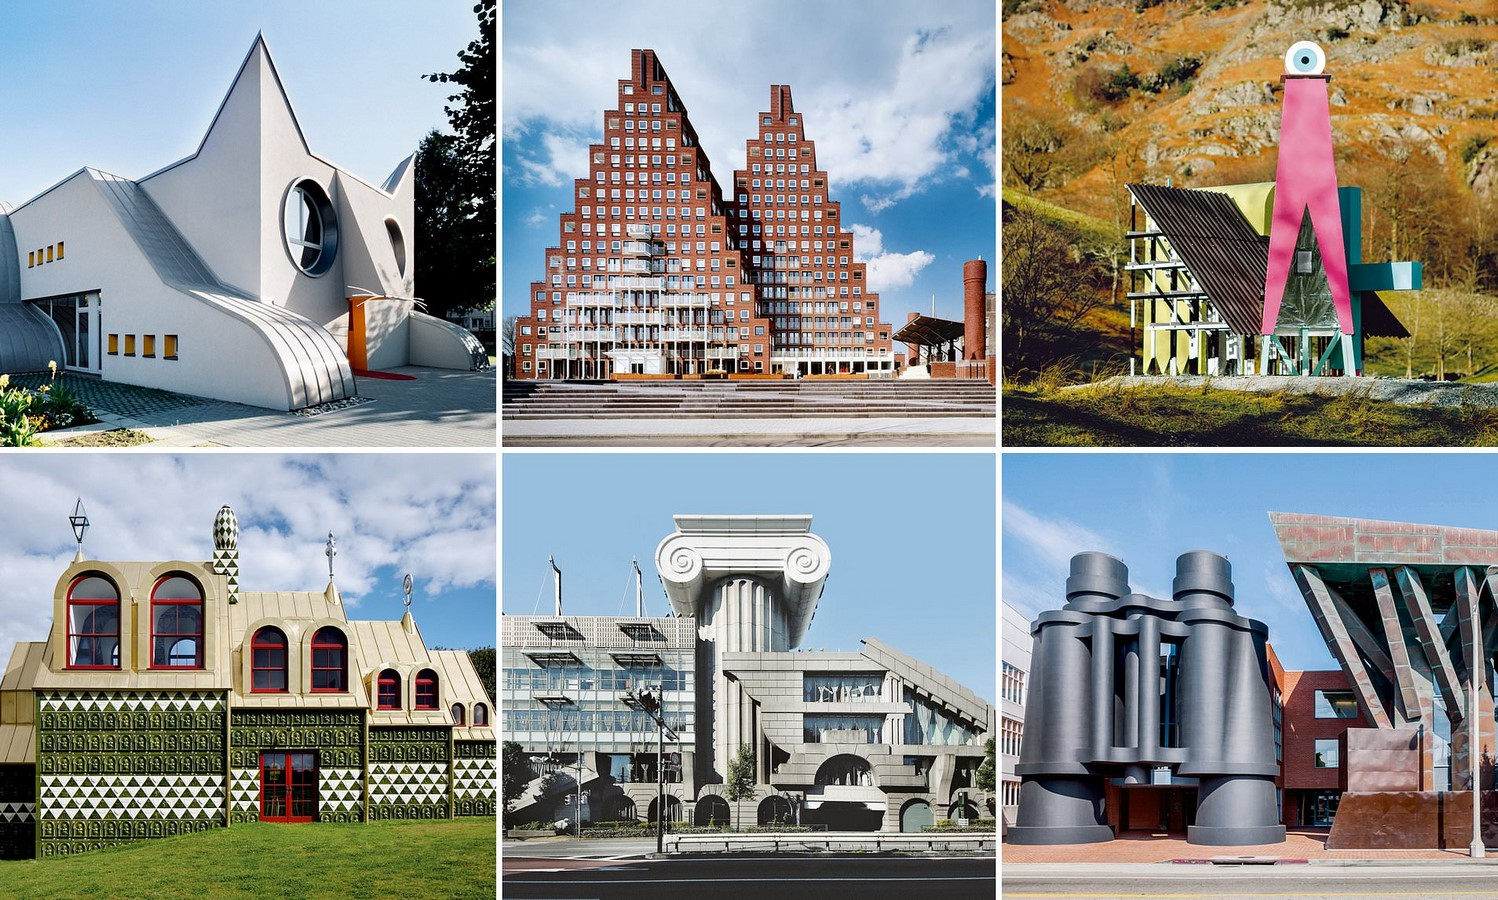 The Origin of Post-Modernist Architecture